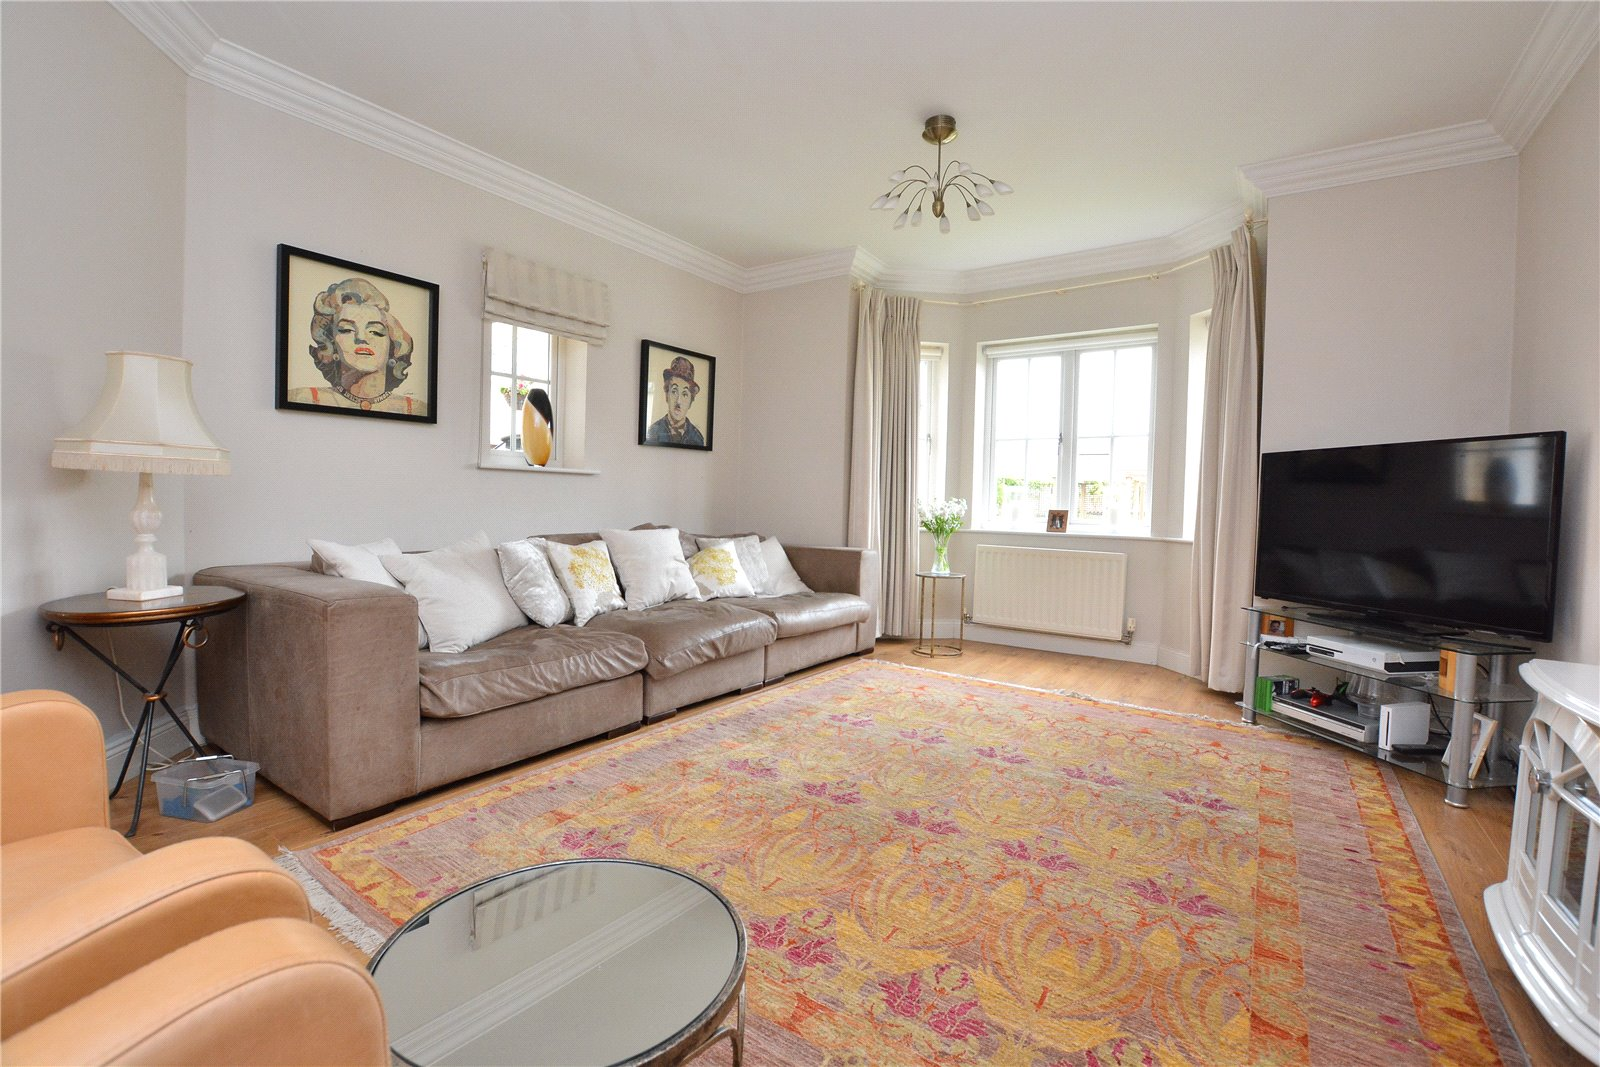 property for sale in Wetherby, living room space